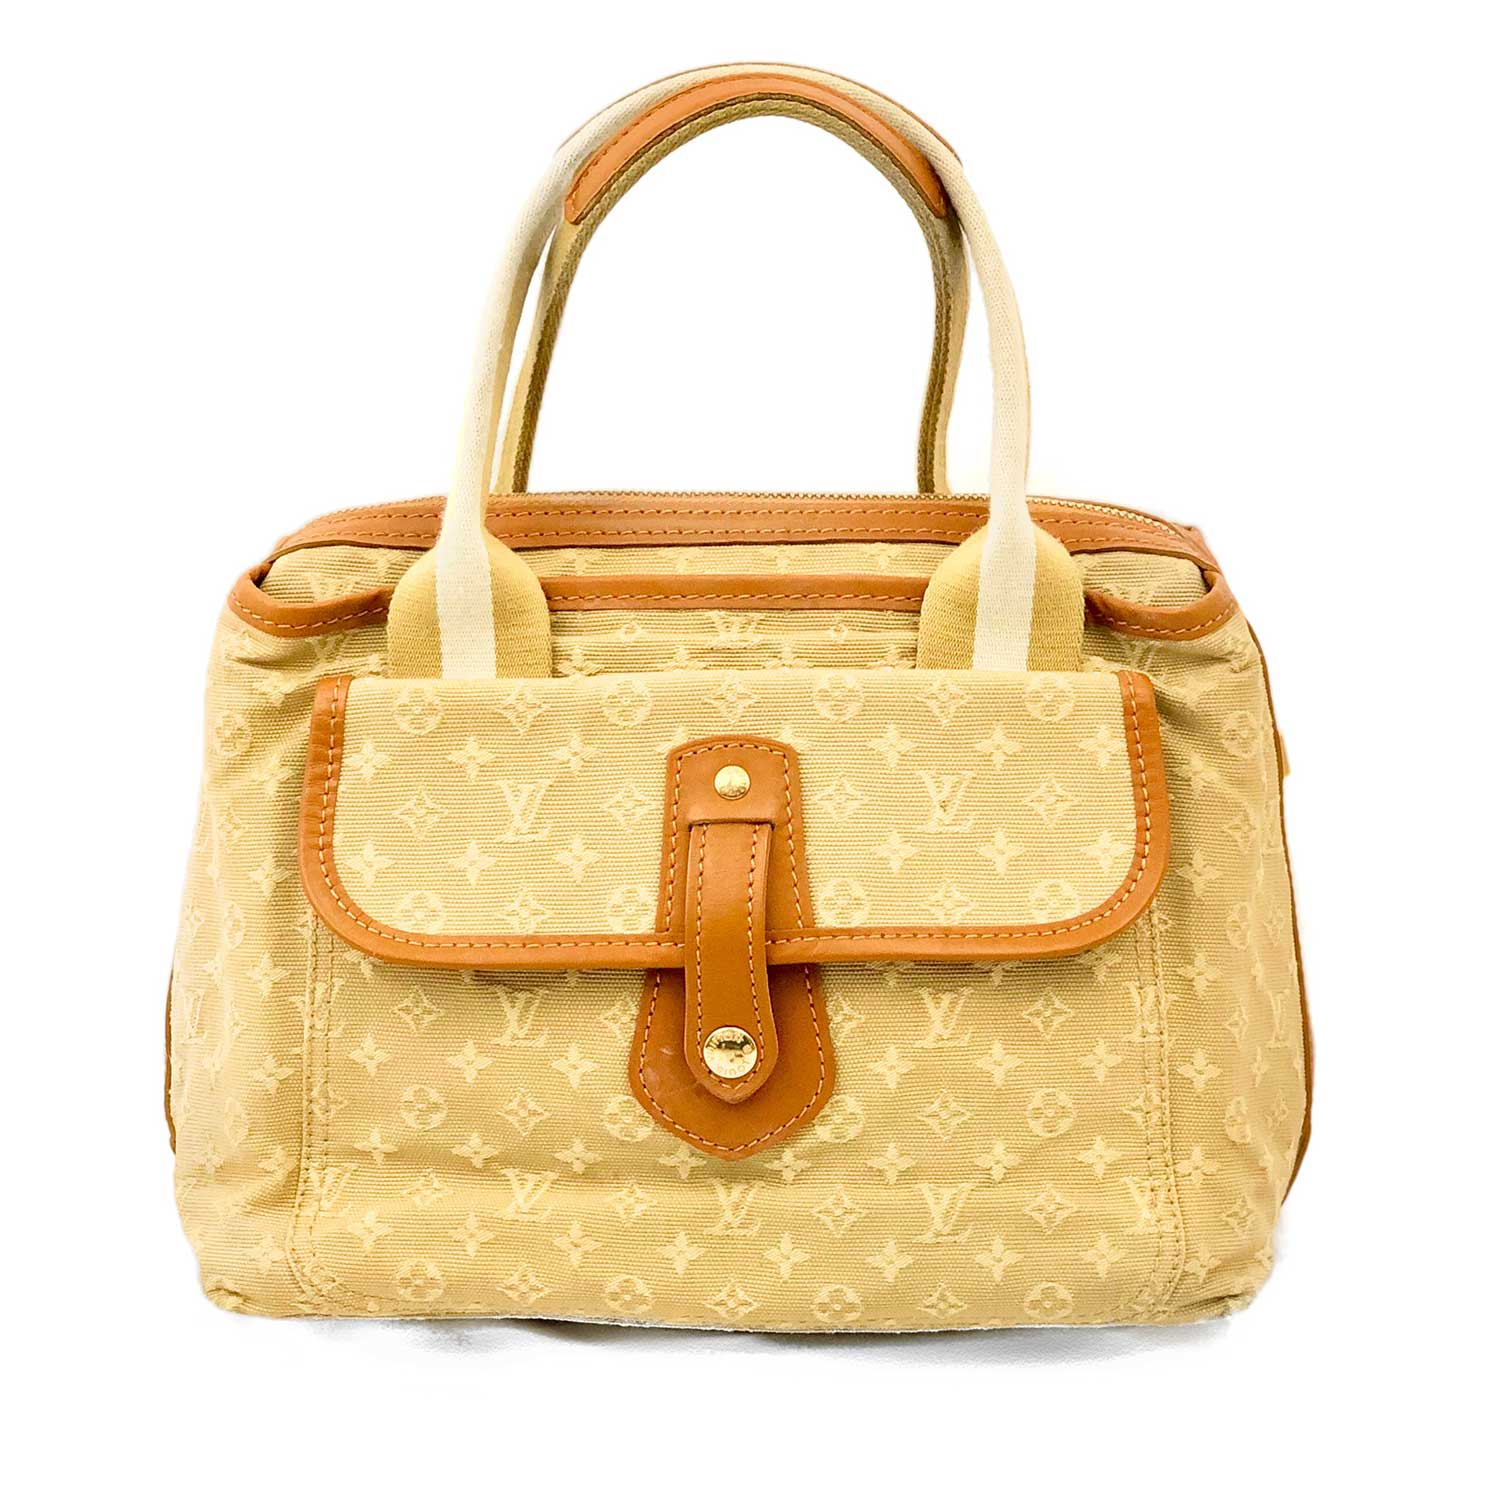 2a06b9ce2 Bolsa Louis Vuitton Mini Lin Beige